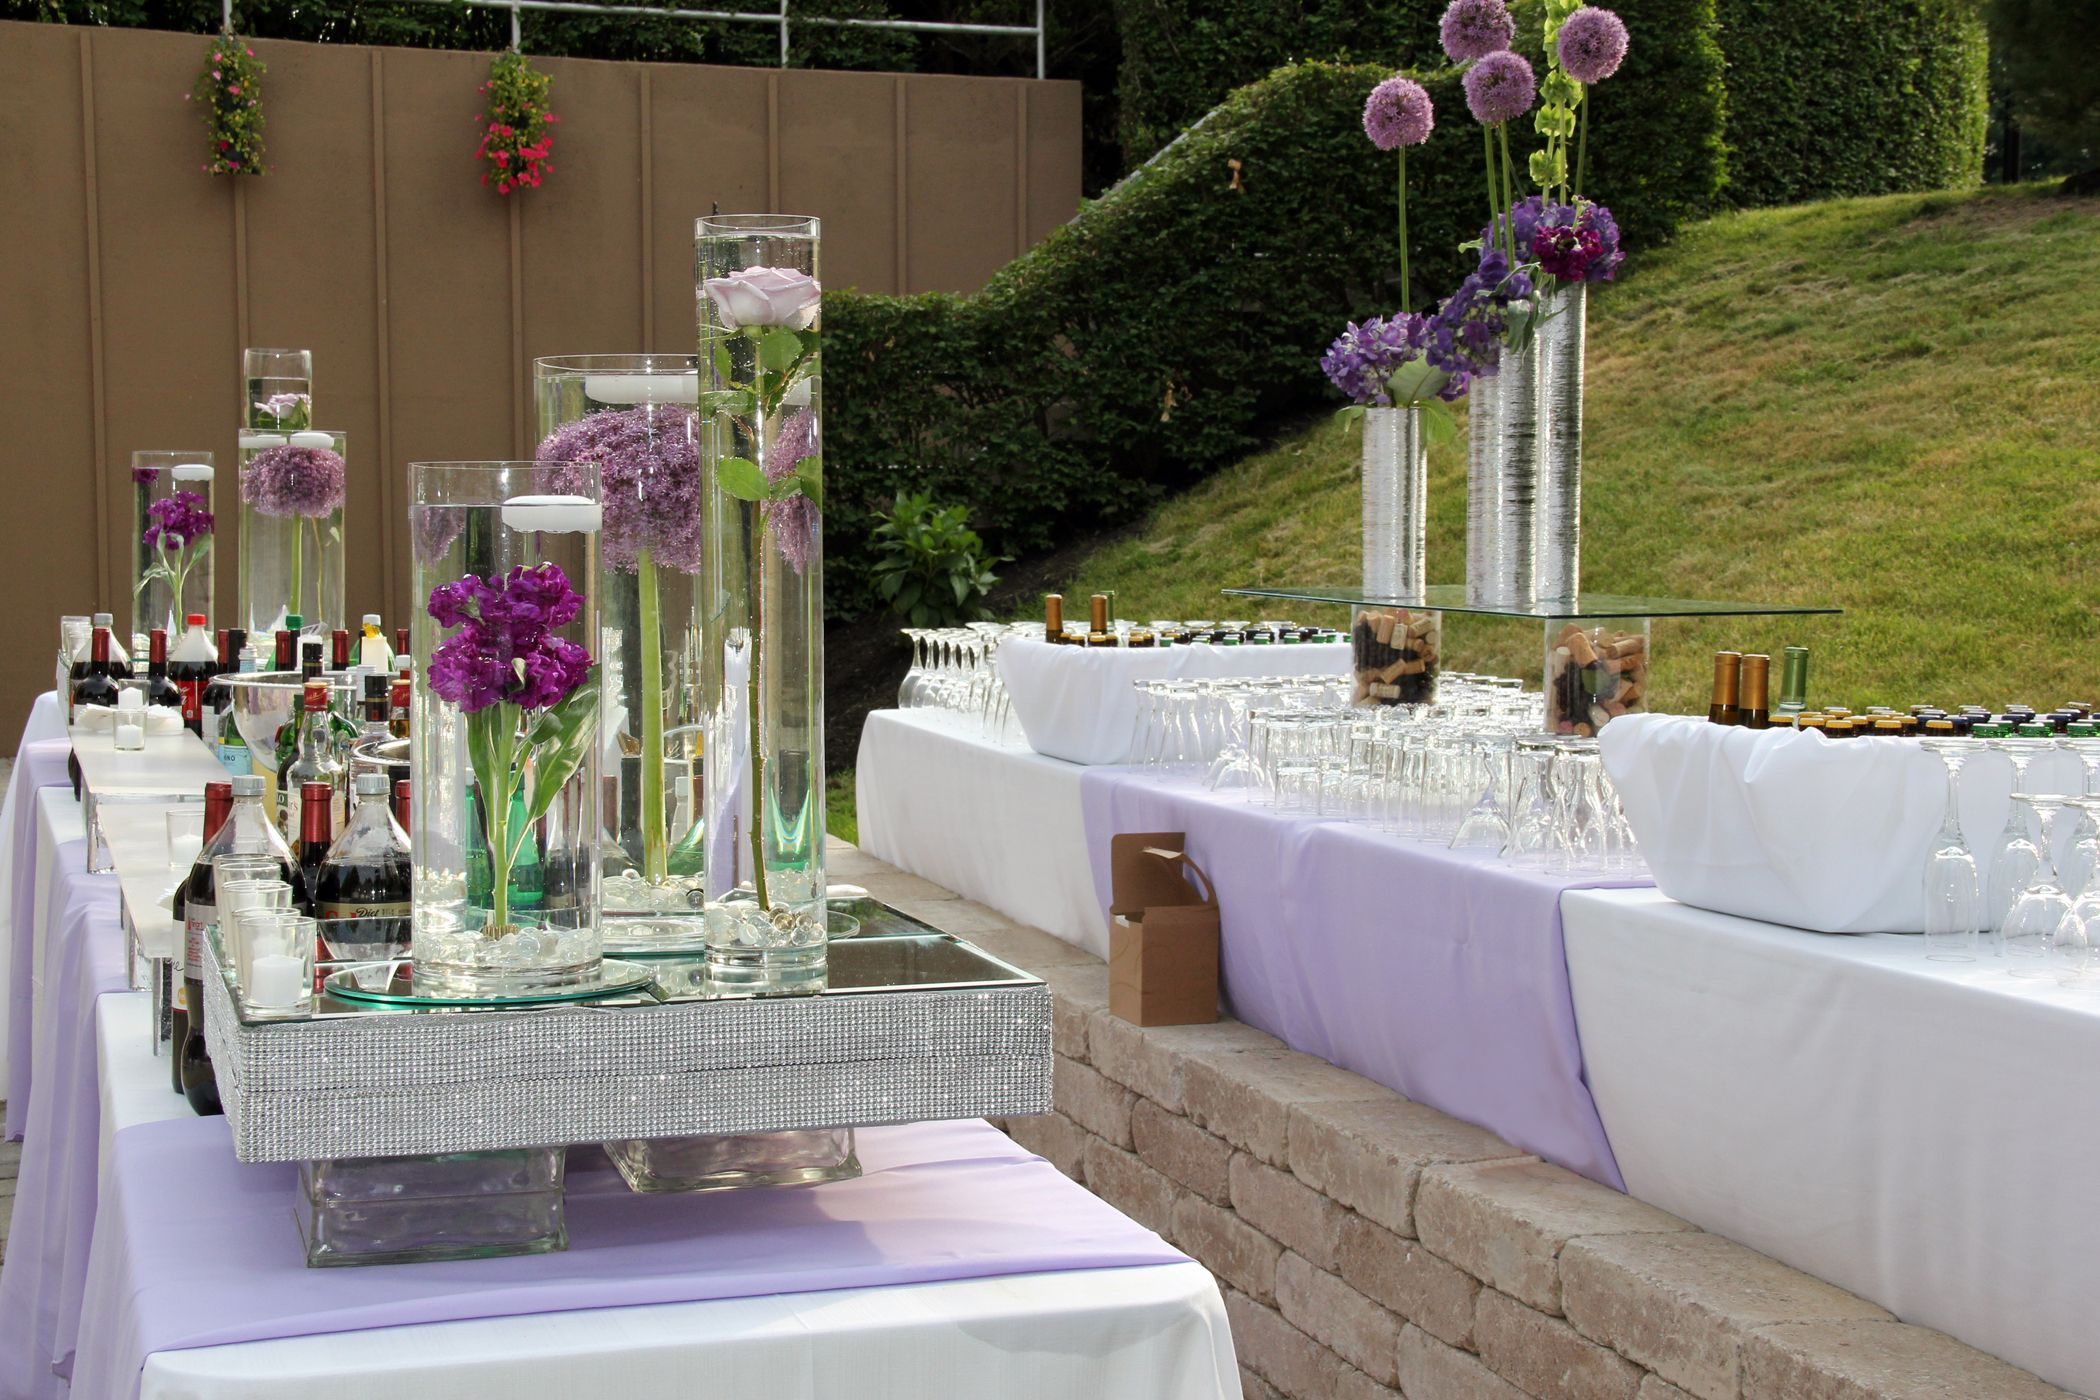 Summer Bar Set Up For An Outdoor Garden Wedding Reception